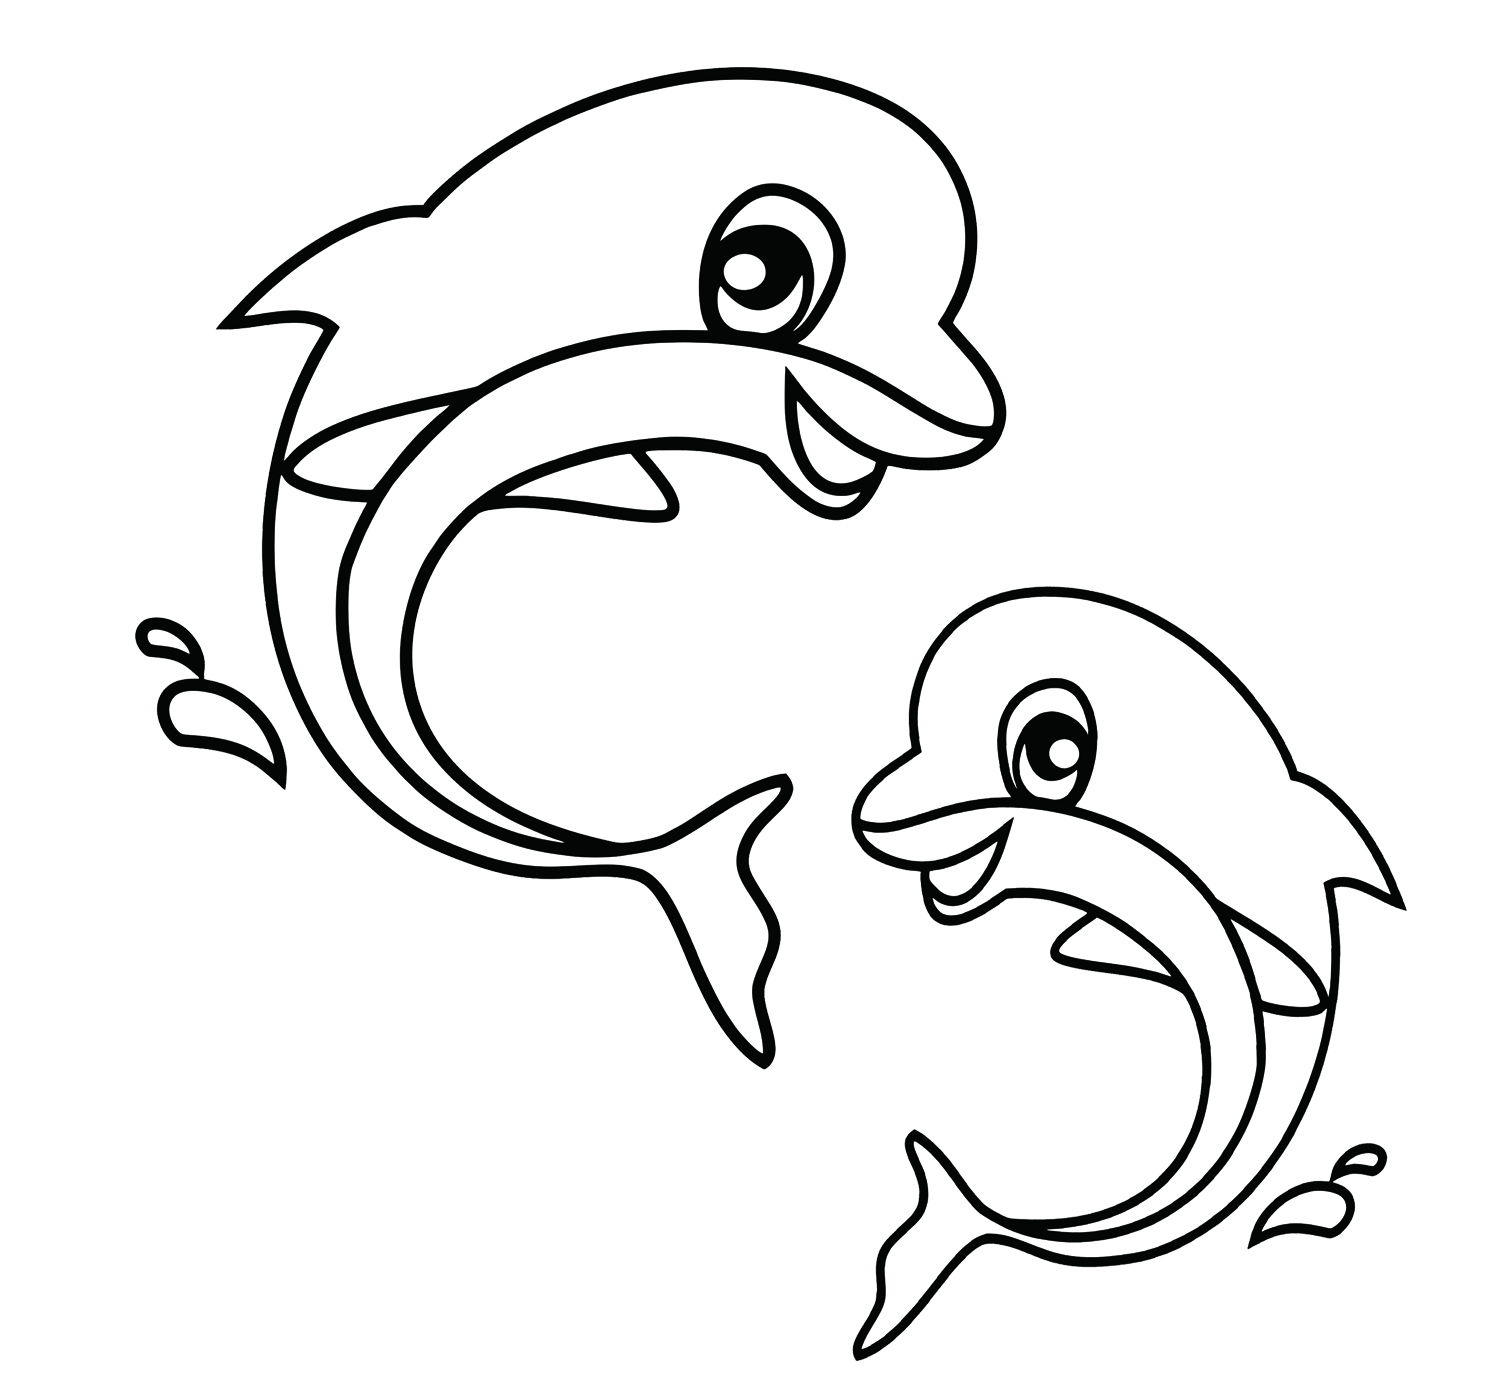 1500x1374 Animal Coloring Pages (10)